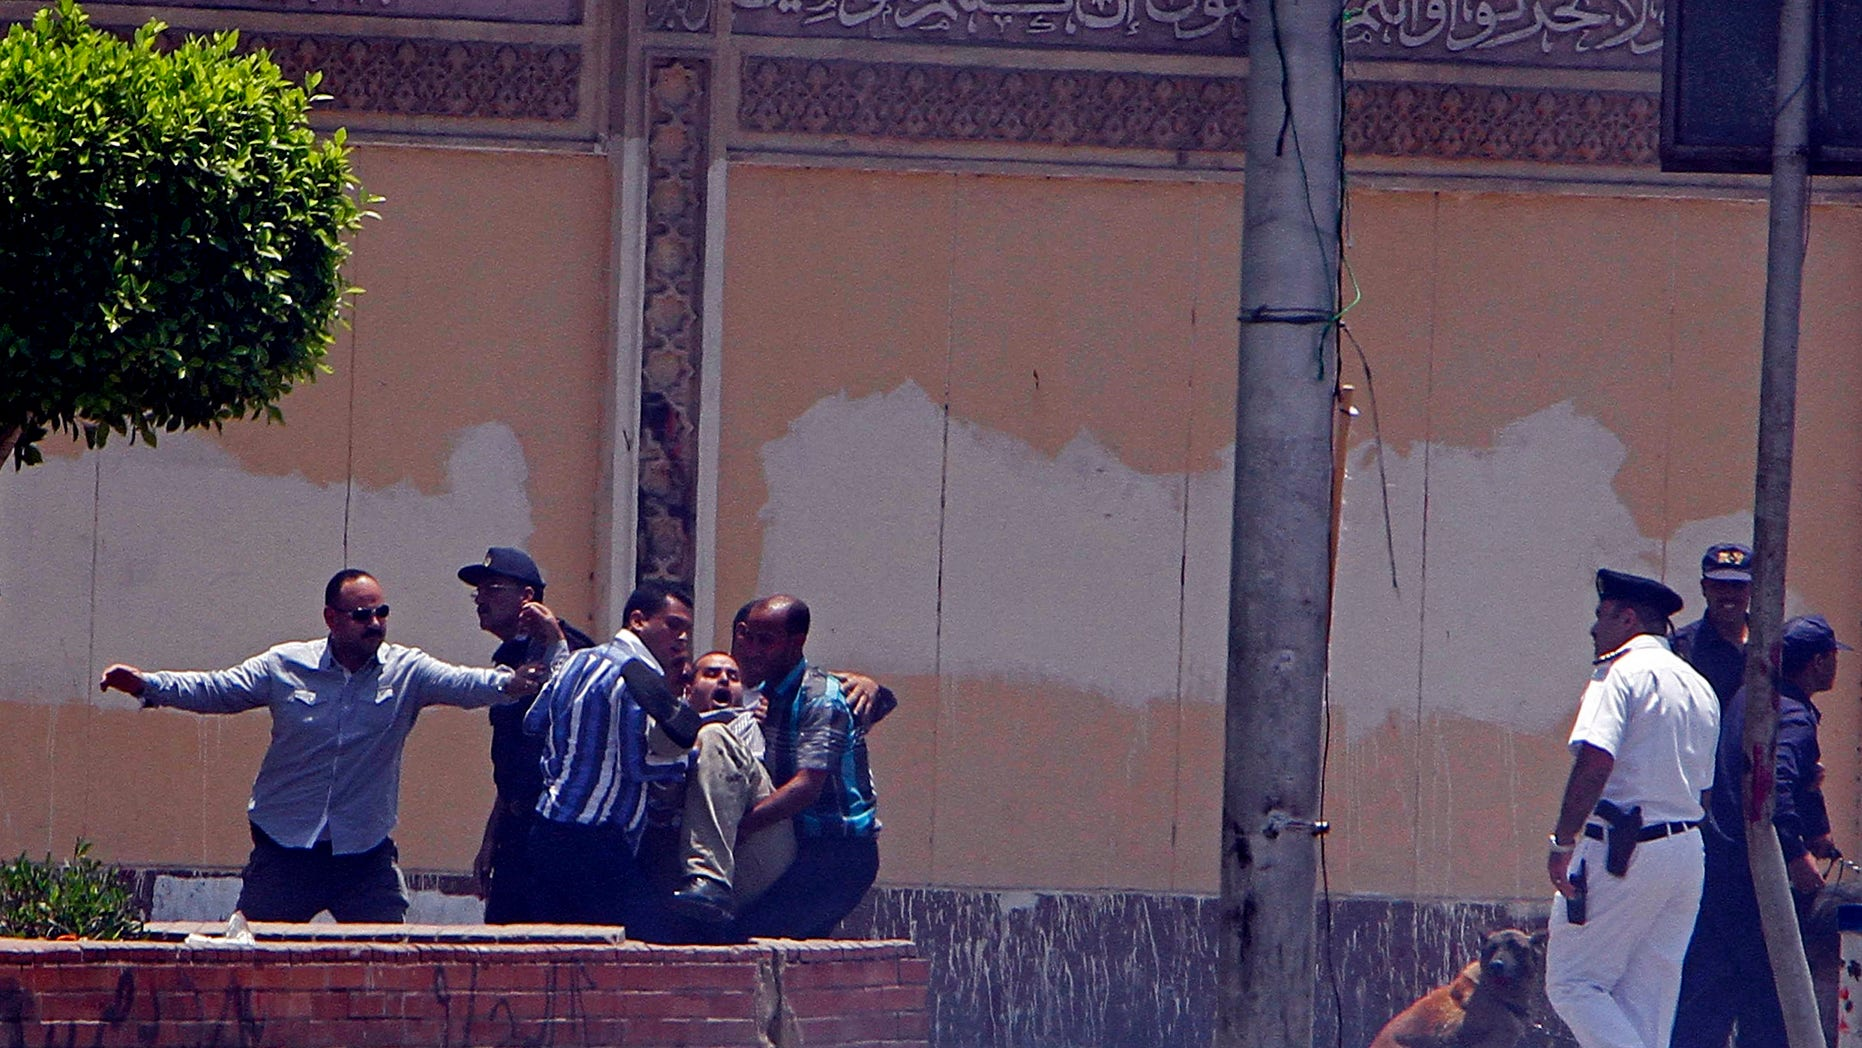 June 30, 2014 - Egyptian security forces and medics help an injured man to an ambulance after 2 homemade bombs went off near the presidential palace in Cairo, Egypt.